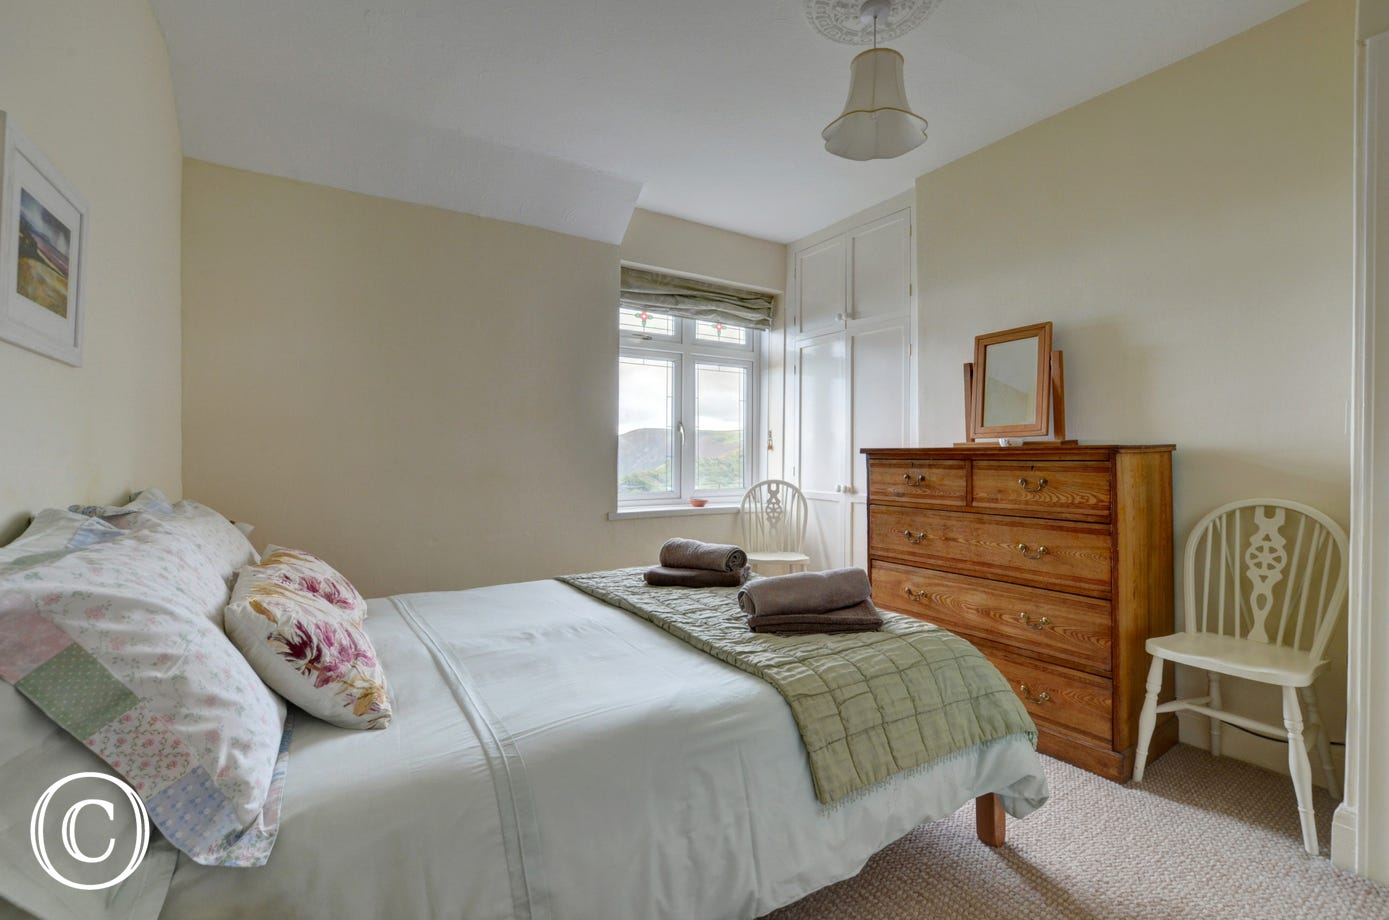 The double bedroom has a large ensuite bathroom with underfloor heating